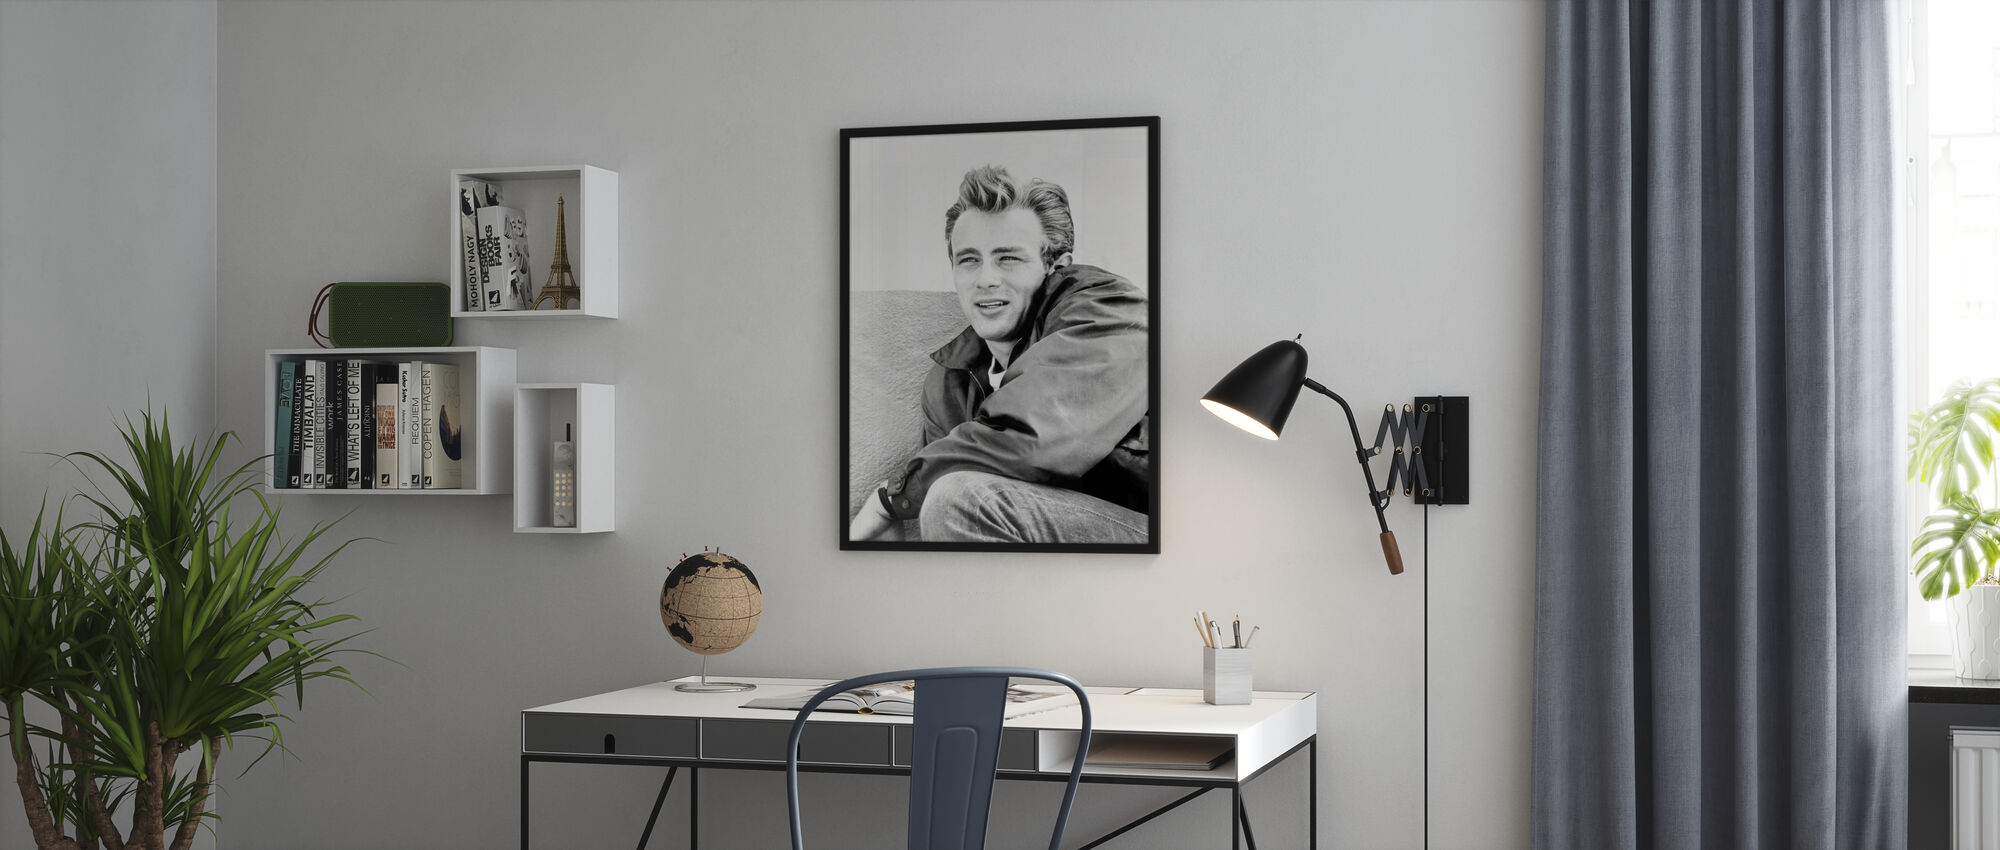 Rebel without a Cause 2 - Poster - Office